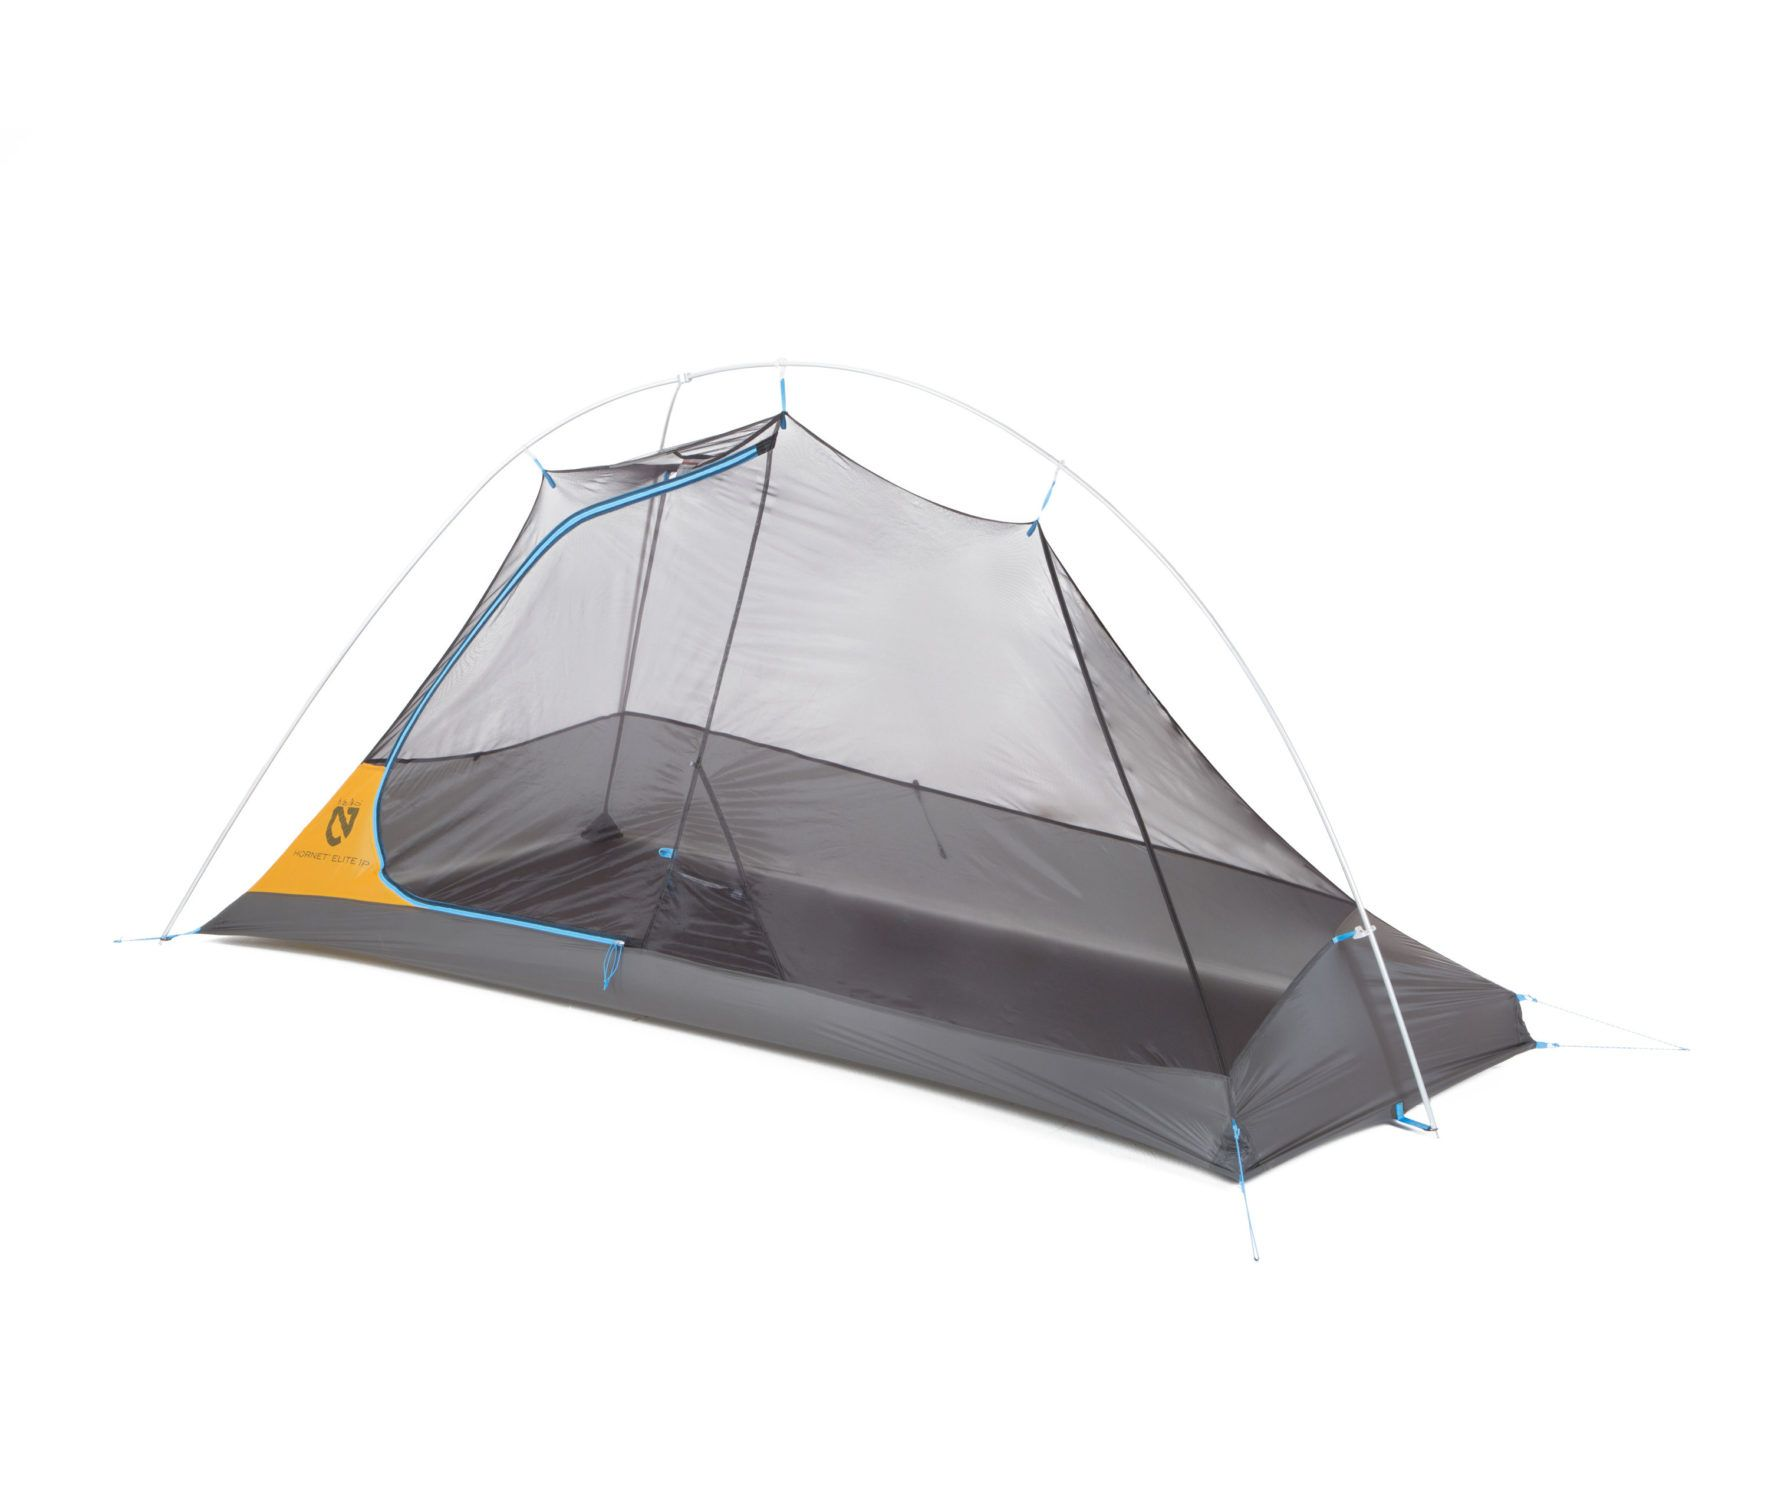 NEMOu0027s Hornet™ Elite Ultralight Backpacking Tent is the lightest freestanding backpacking tent with two doors and two vestibules offering the ultimate and ...  sc 1 st  Pinterest & NEMOu0027s Hornet™ Elite Ultralight Backpacking Tent is the lightest ...